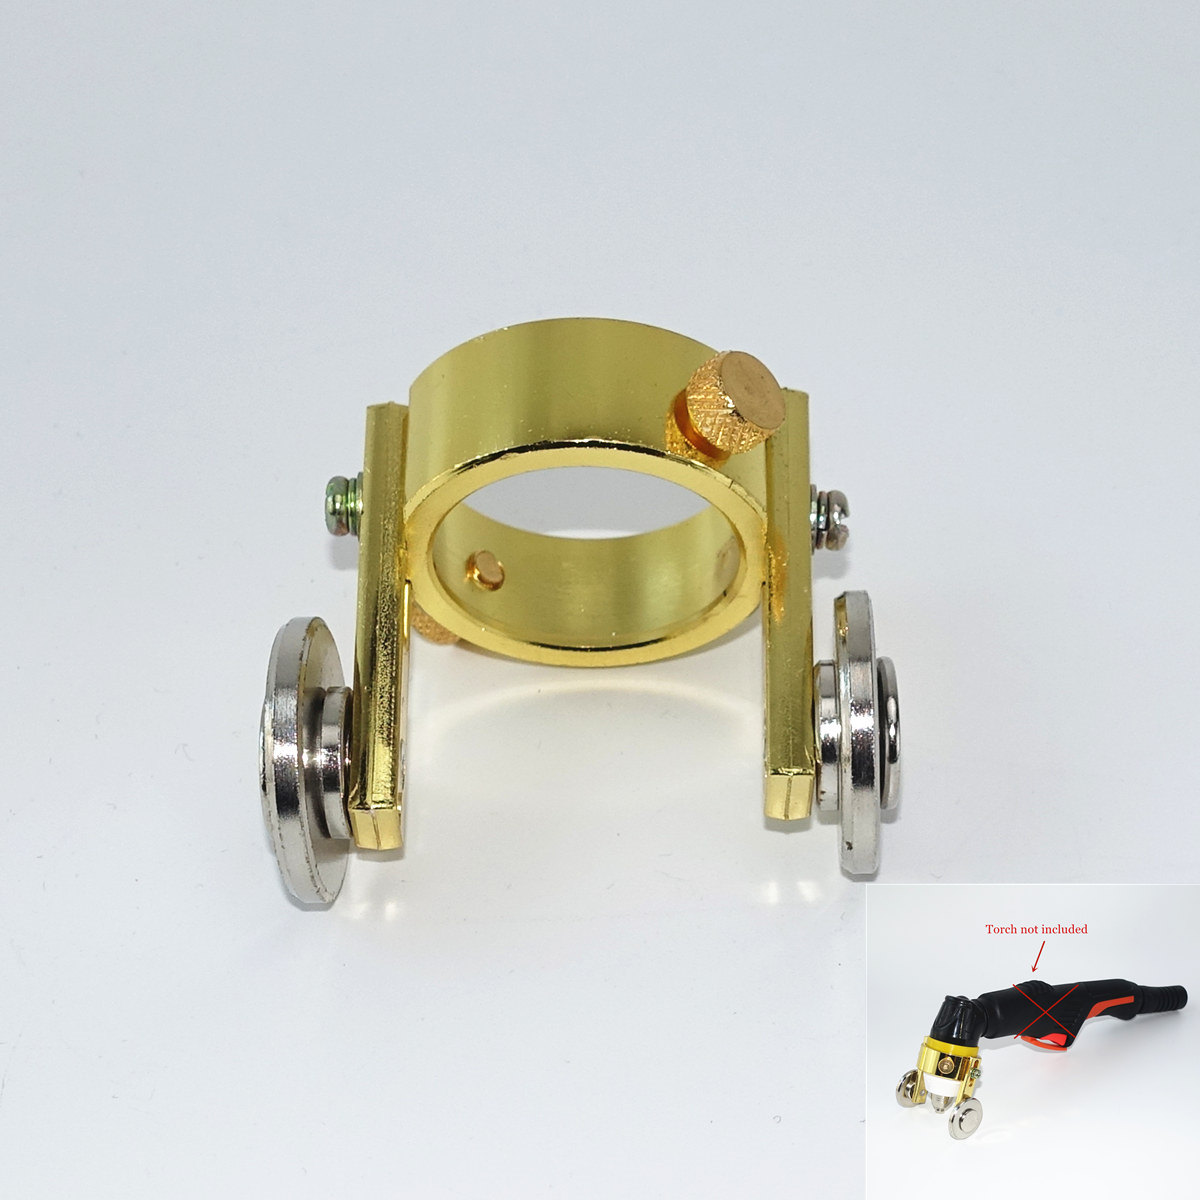 Professional P80 Roller Guide Wheel Spacer Plasma Cutting Torch Guider For P80 Plasma Cutting Machine